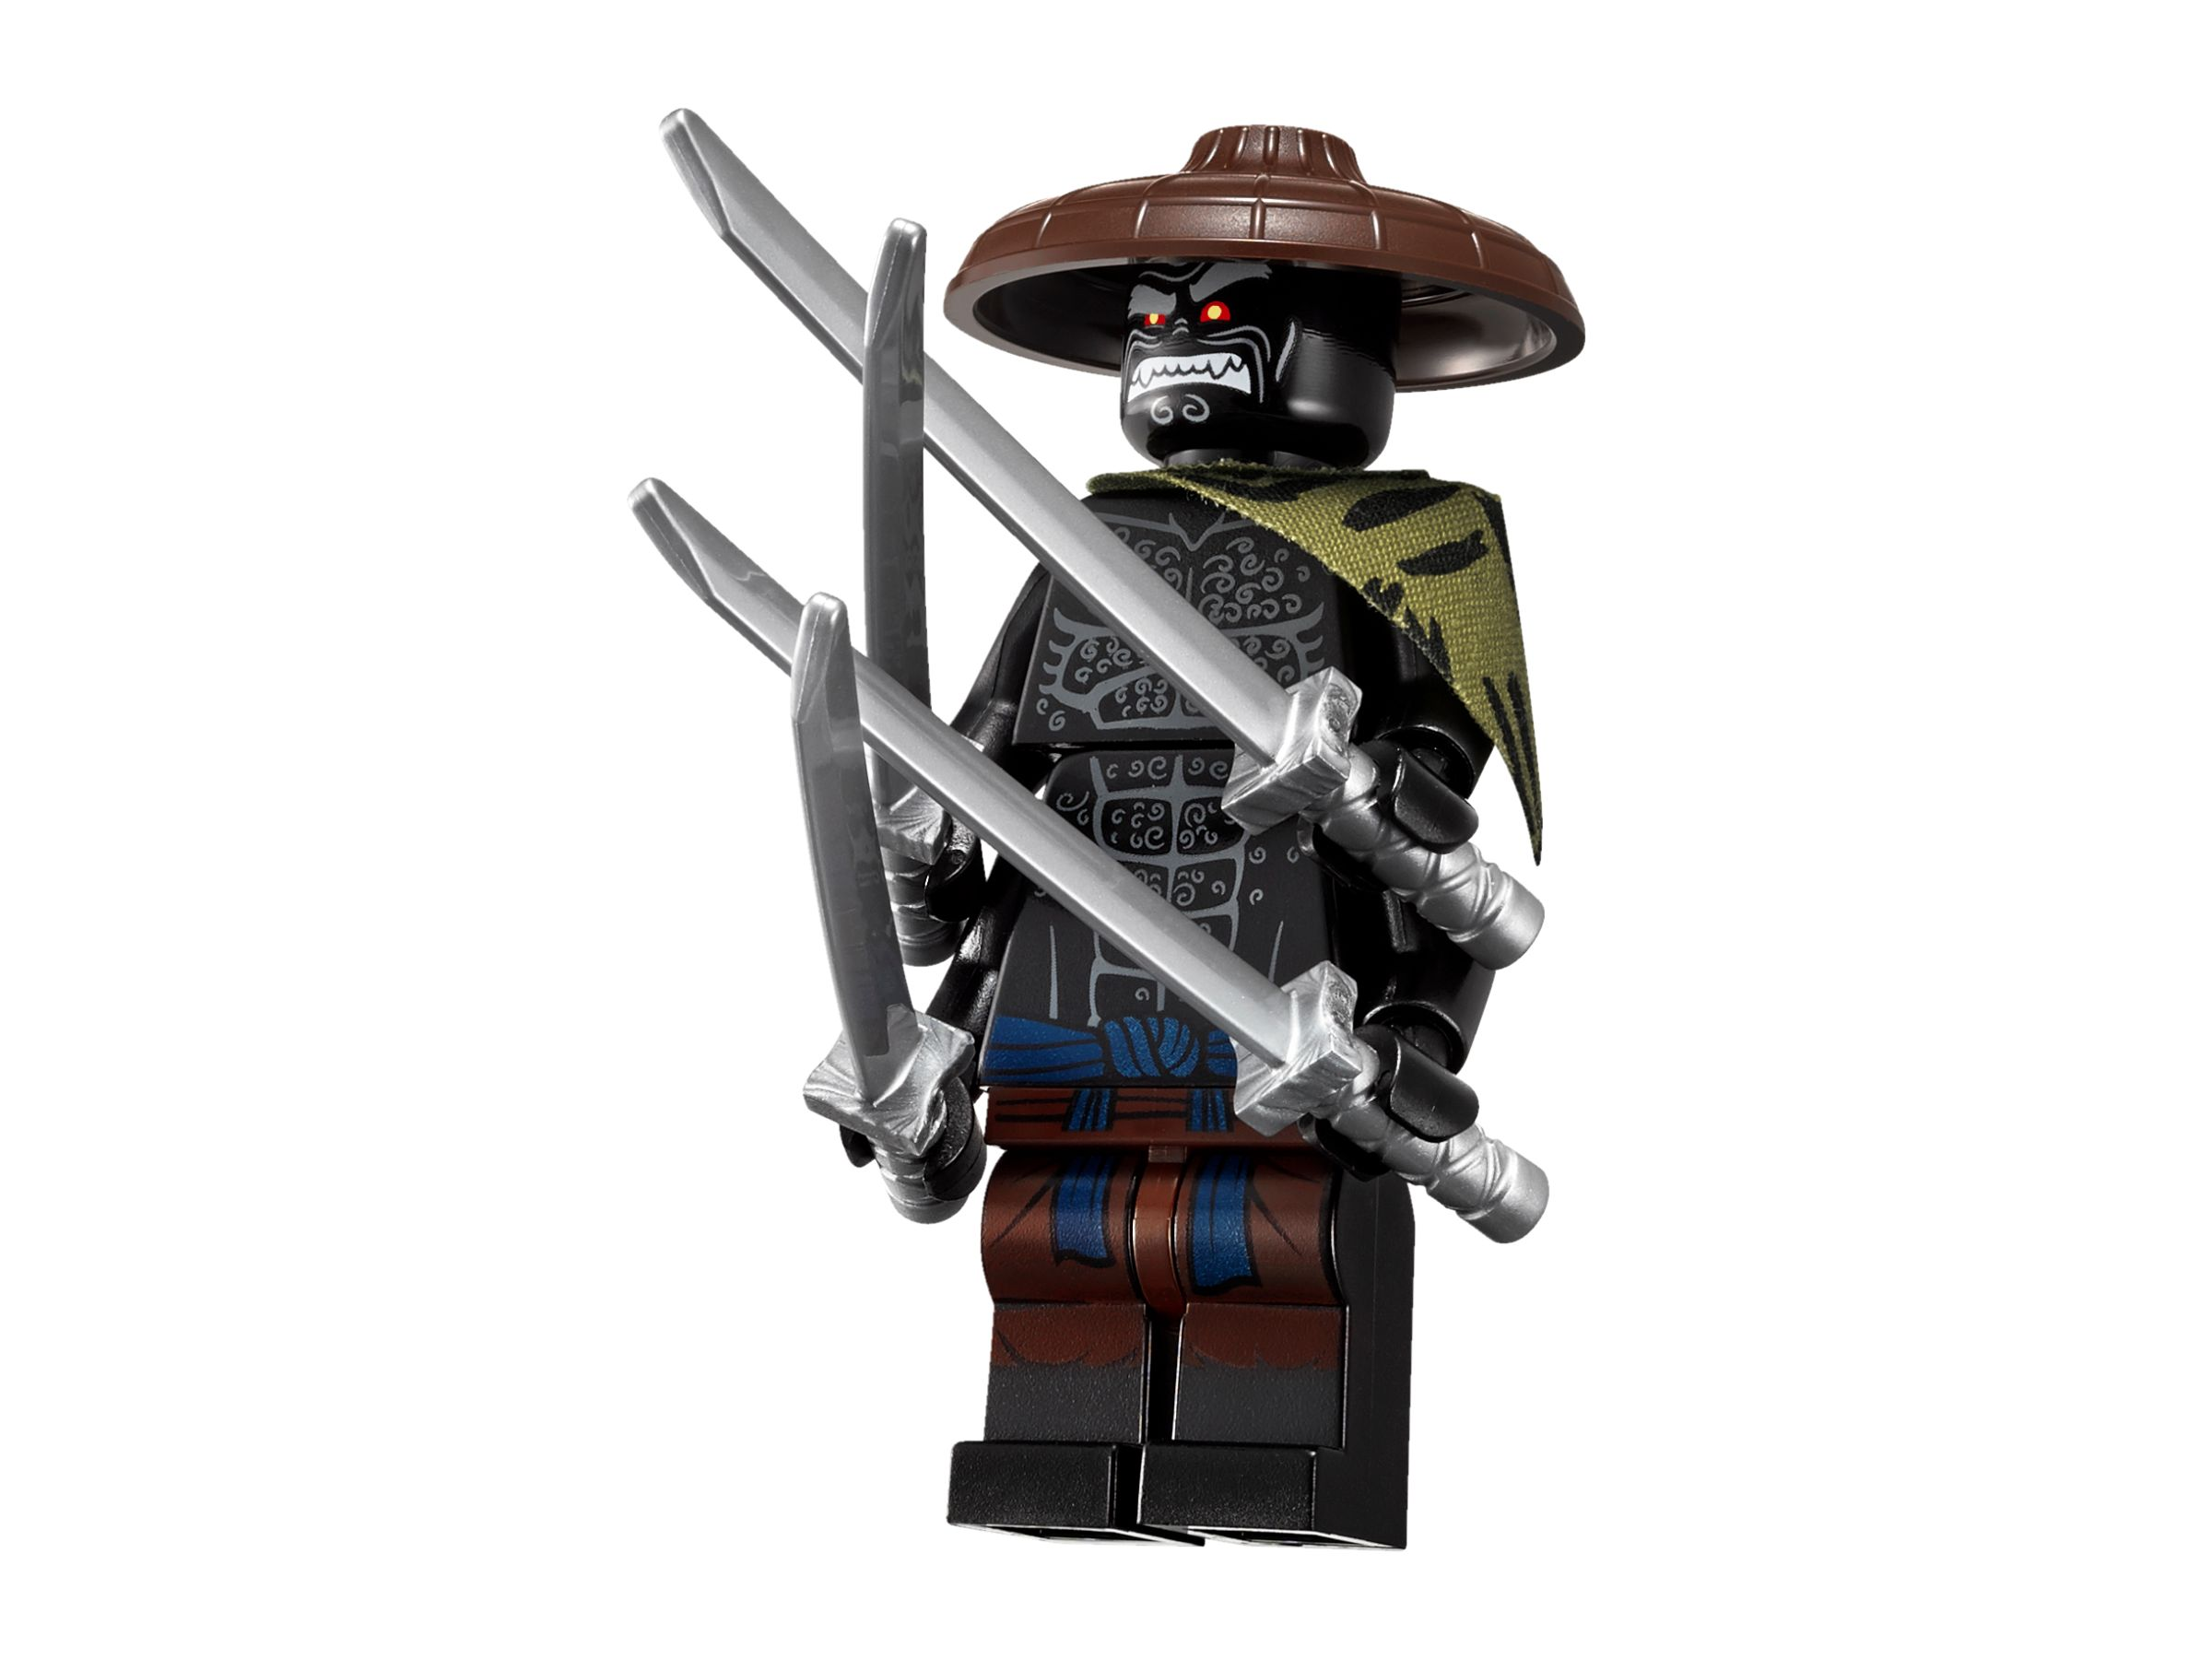 LEGO The LEGO Ninjago Movie 70617 Ultimativ ultimatives Tempel-Versteck LEGO_70617_alt10.jpg